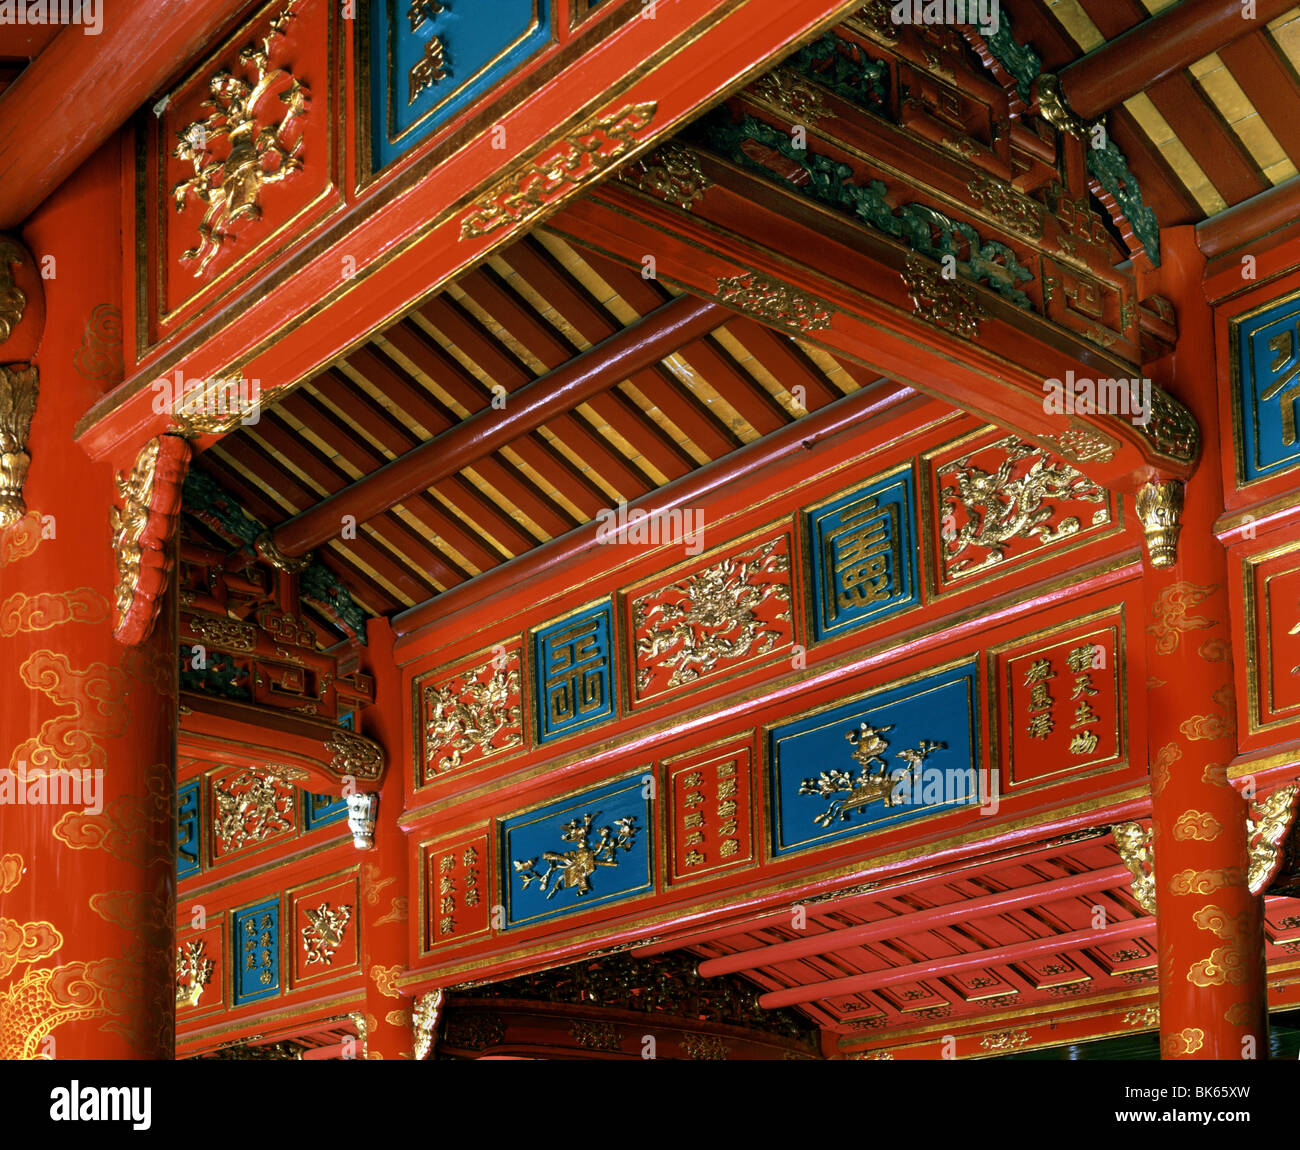 Chinese influence in the architecture, Royal Mausoleums, Hue, Vietnam, Indochina, Southeast Asia, Asia - Stock Image